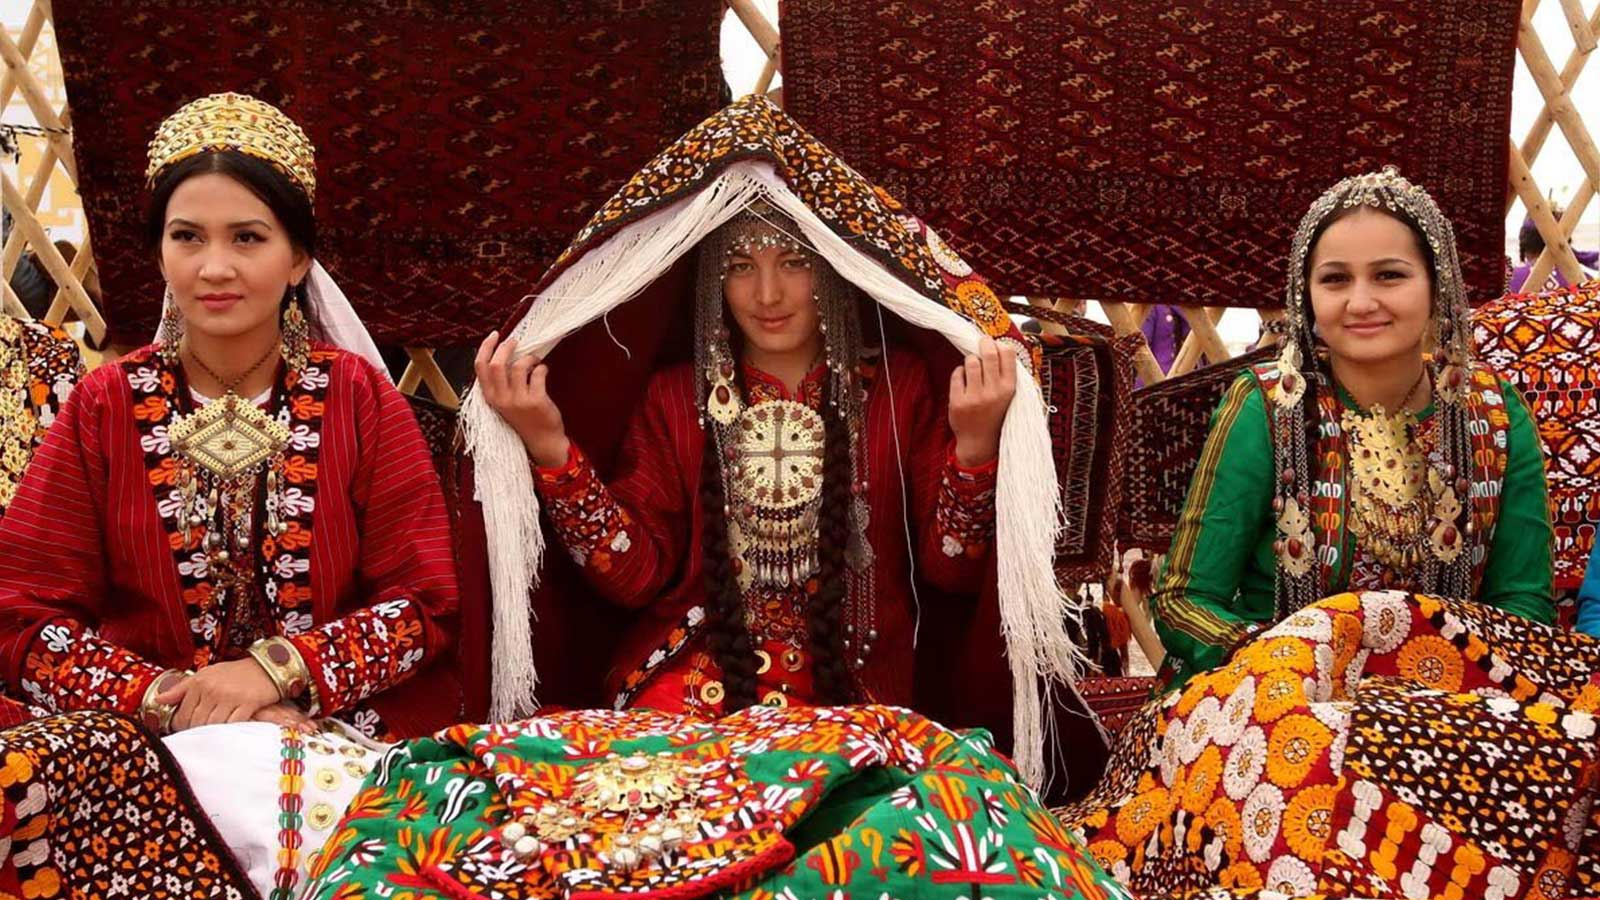 Turkmen Wedding Tokat Turkey